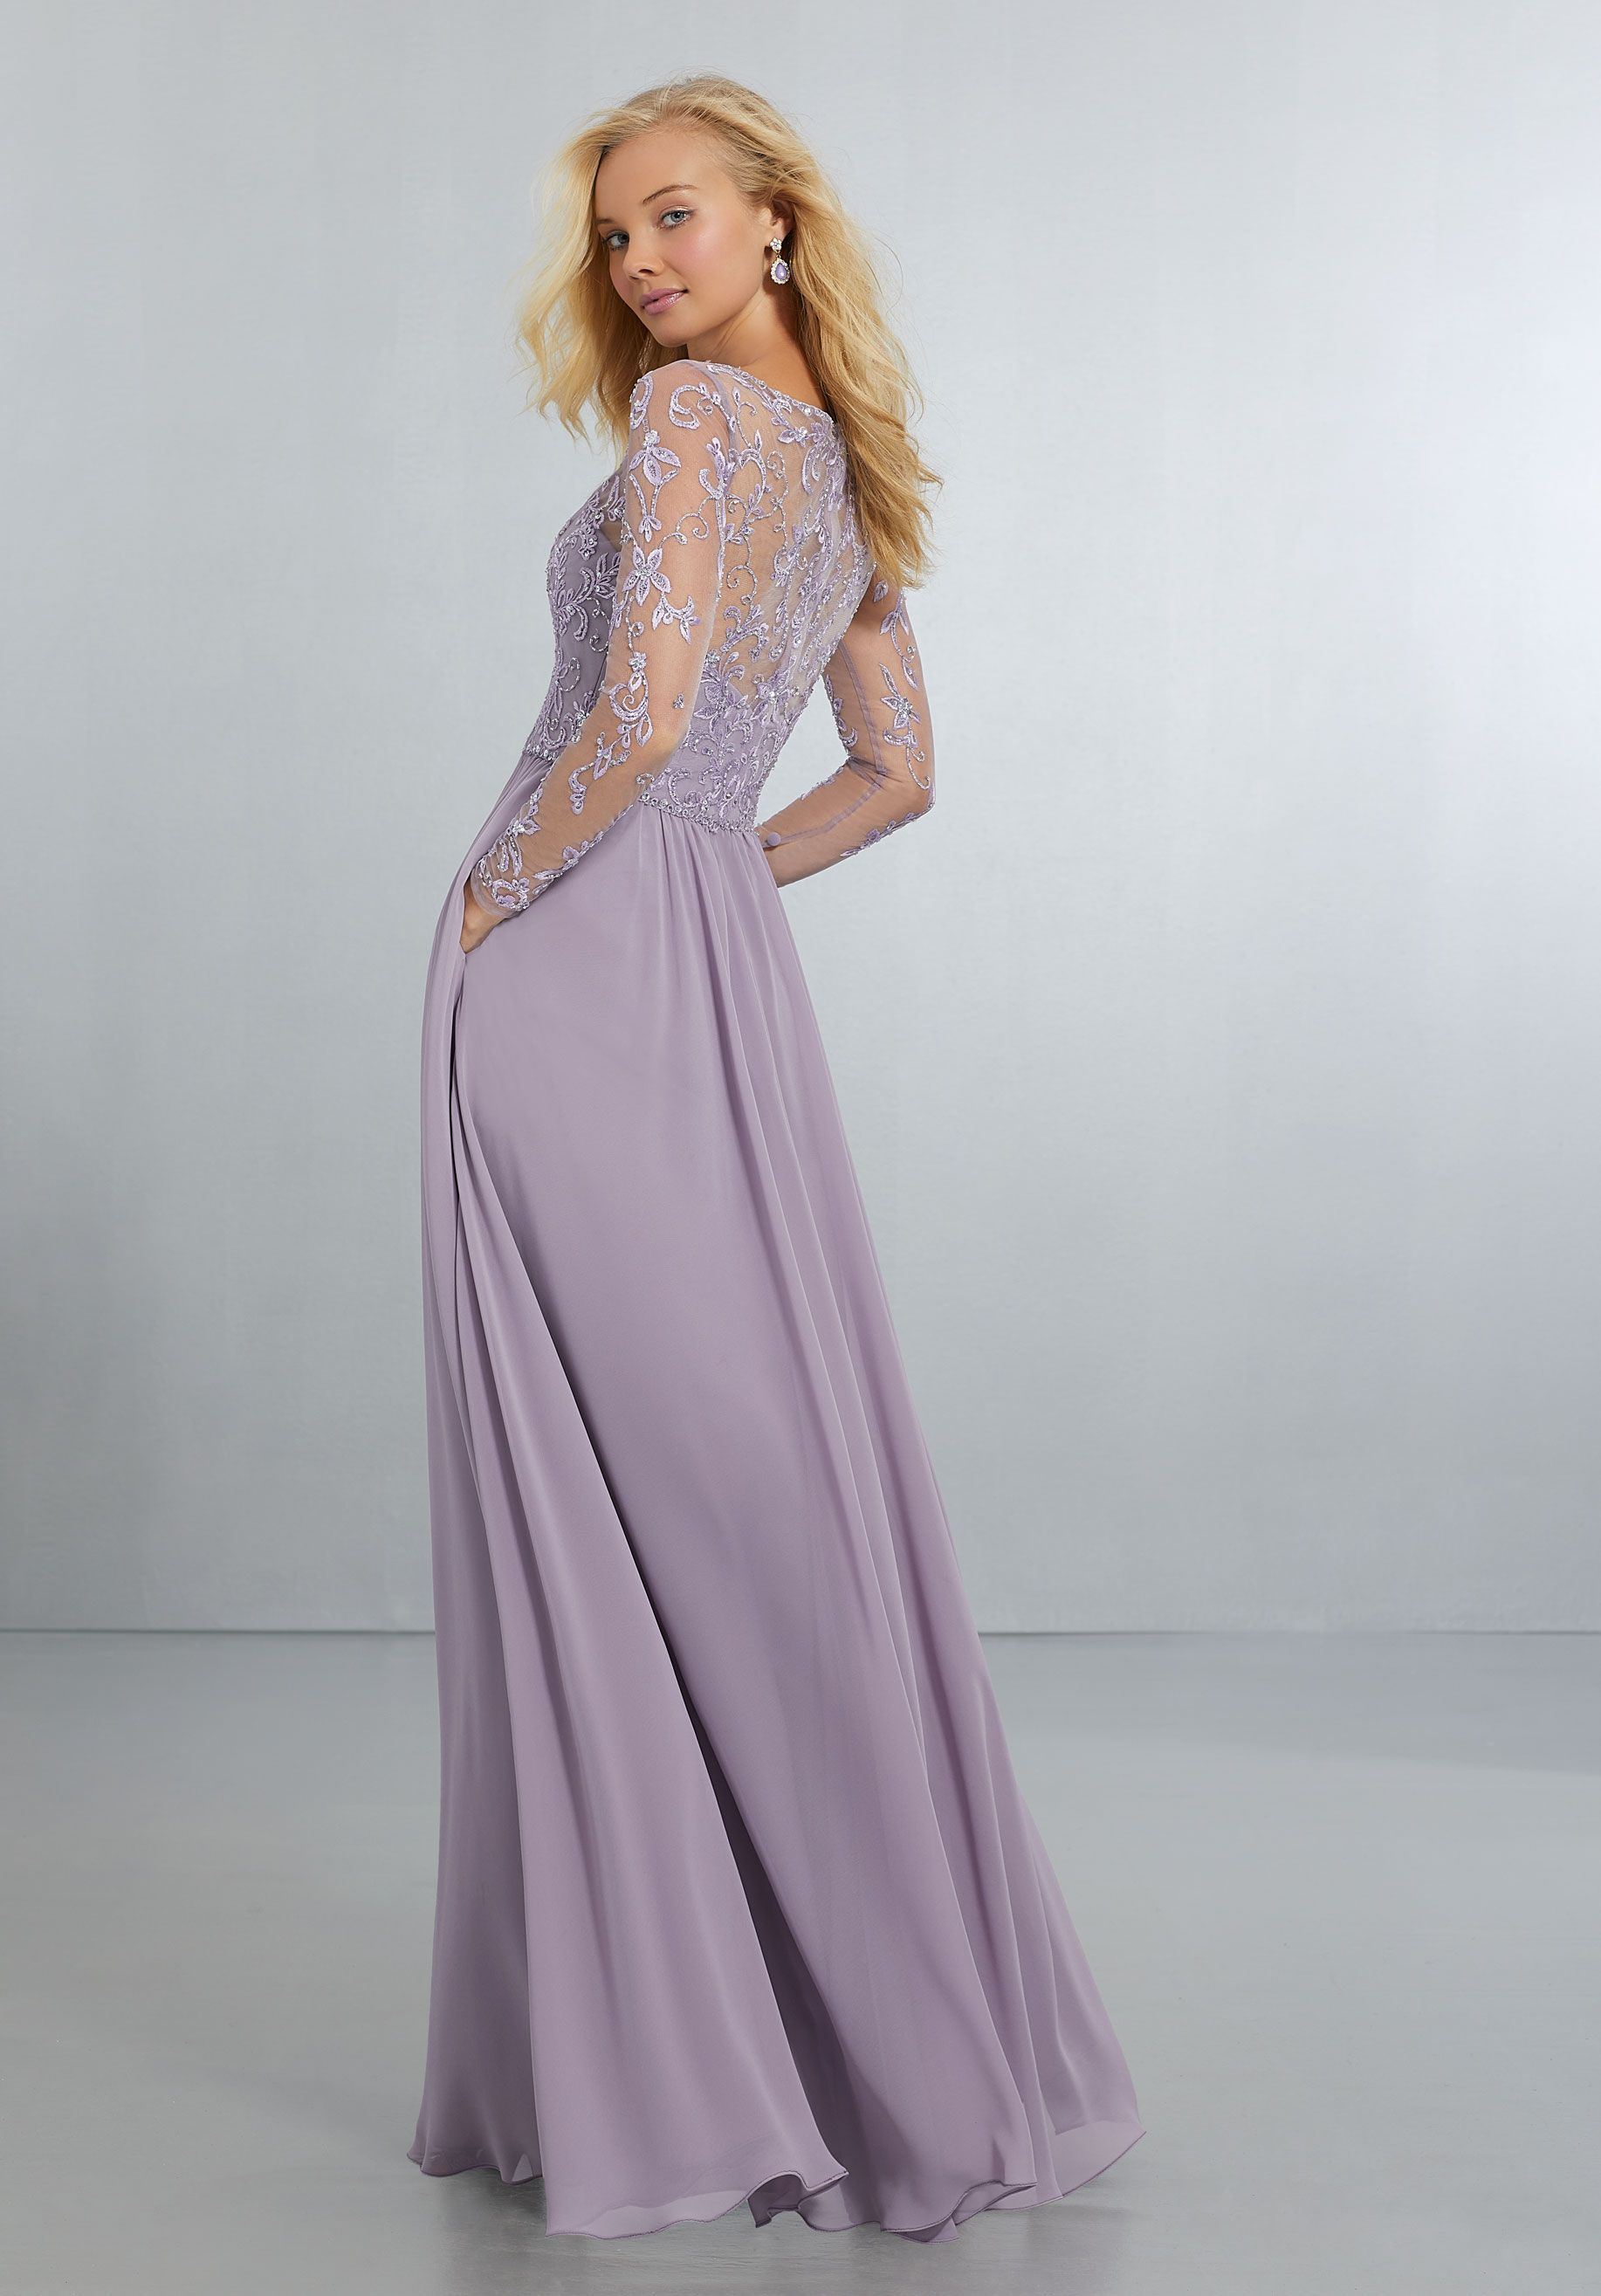 f84e31c5648 Chiffon Bridesmaids Dress with Intricately Embroidered and Beaded ...